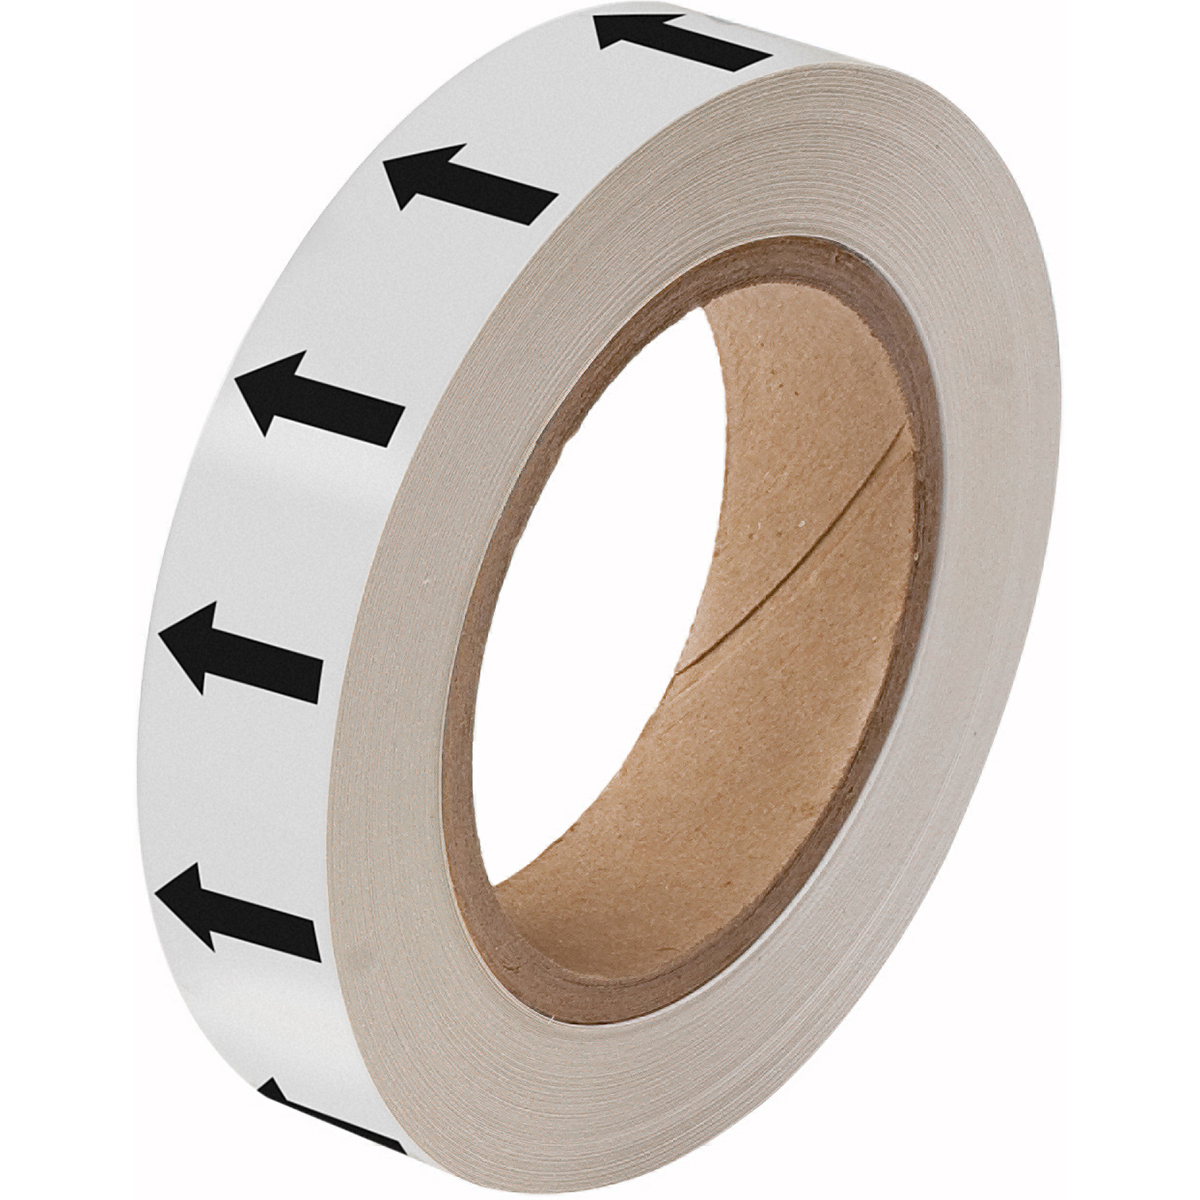 Black on White 25 mm Directional Flow Arrow Tape